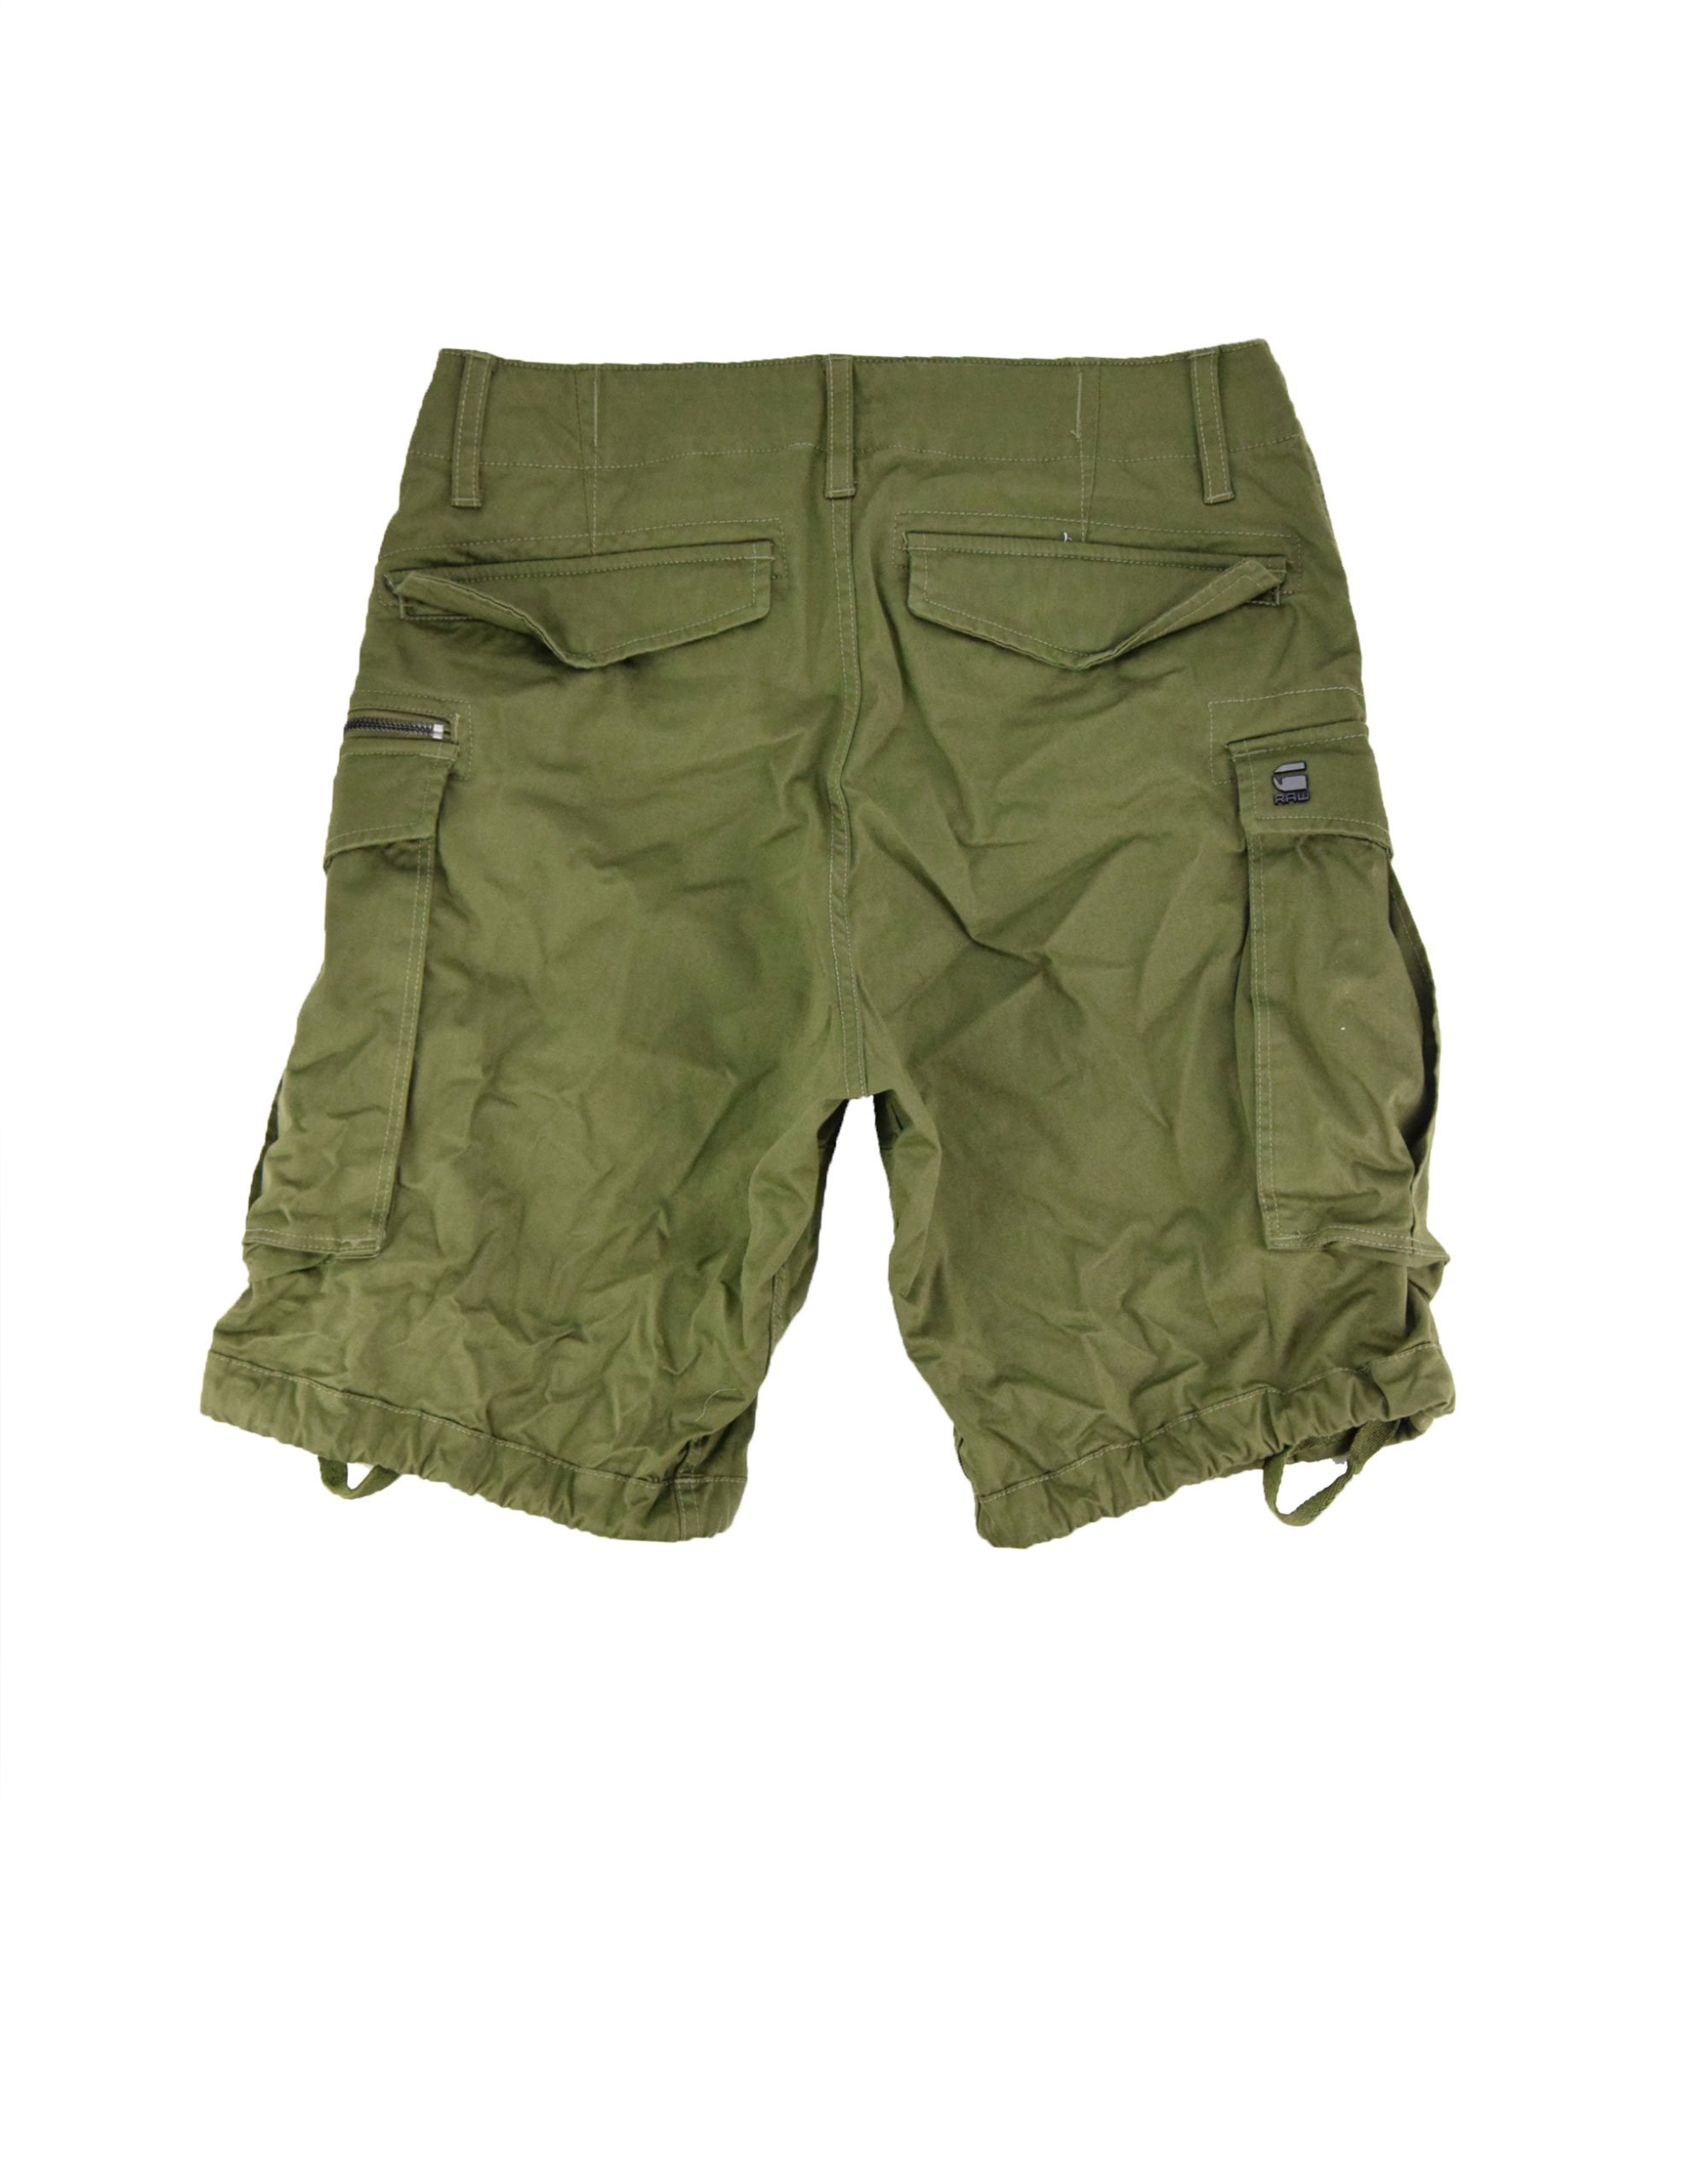 G-Star Raw Rovic Zip Relaxed Shorts (D08566-5126-724) Sage